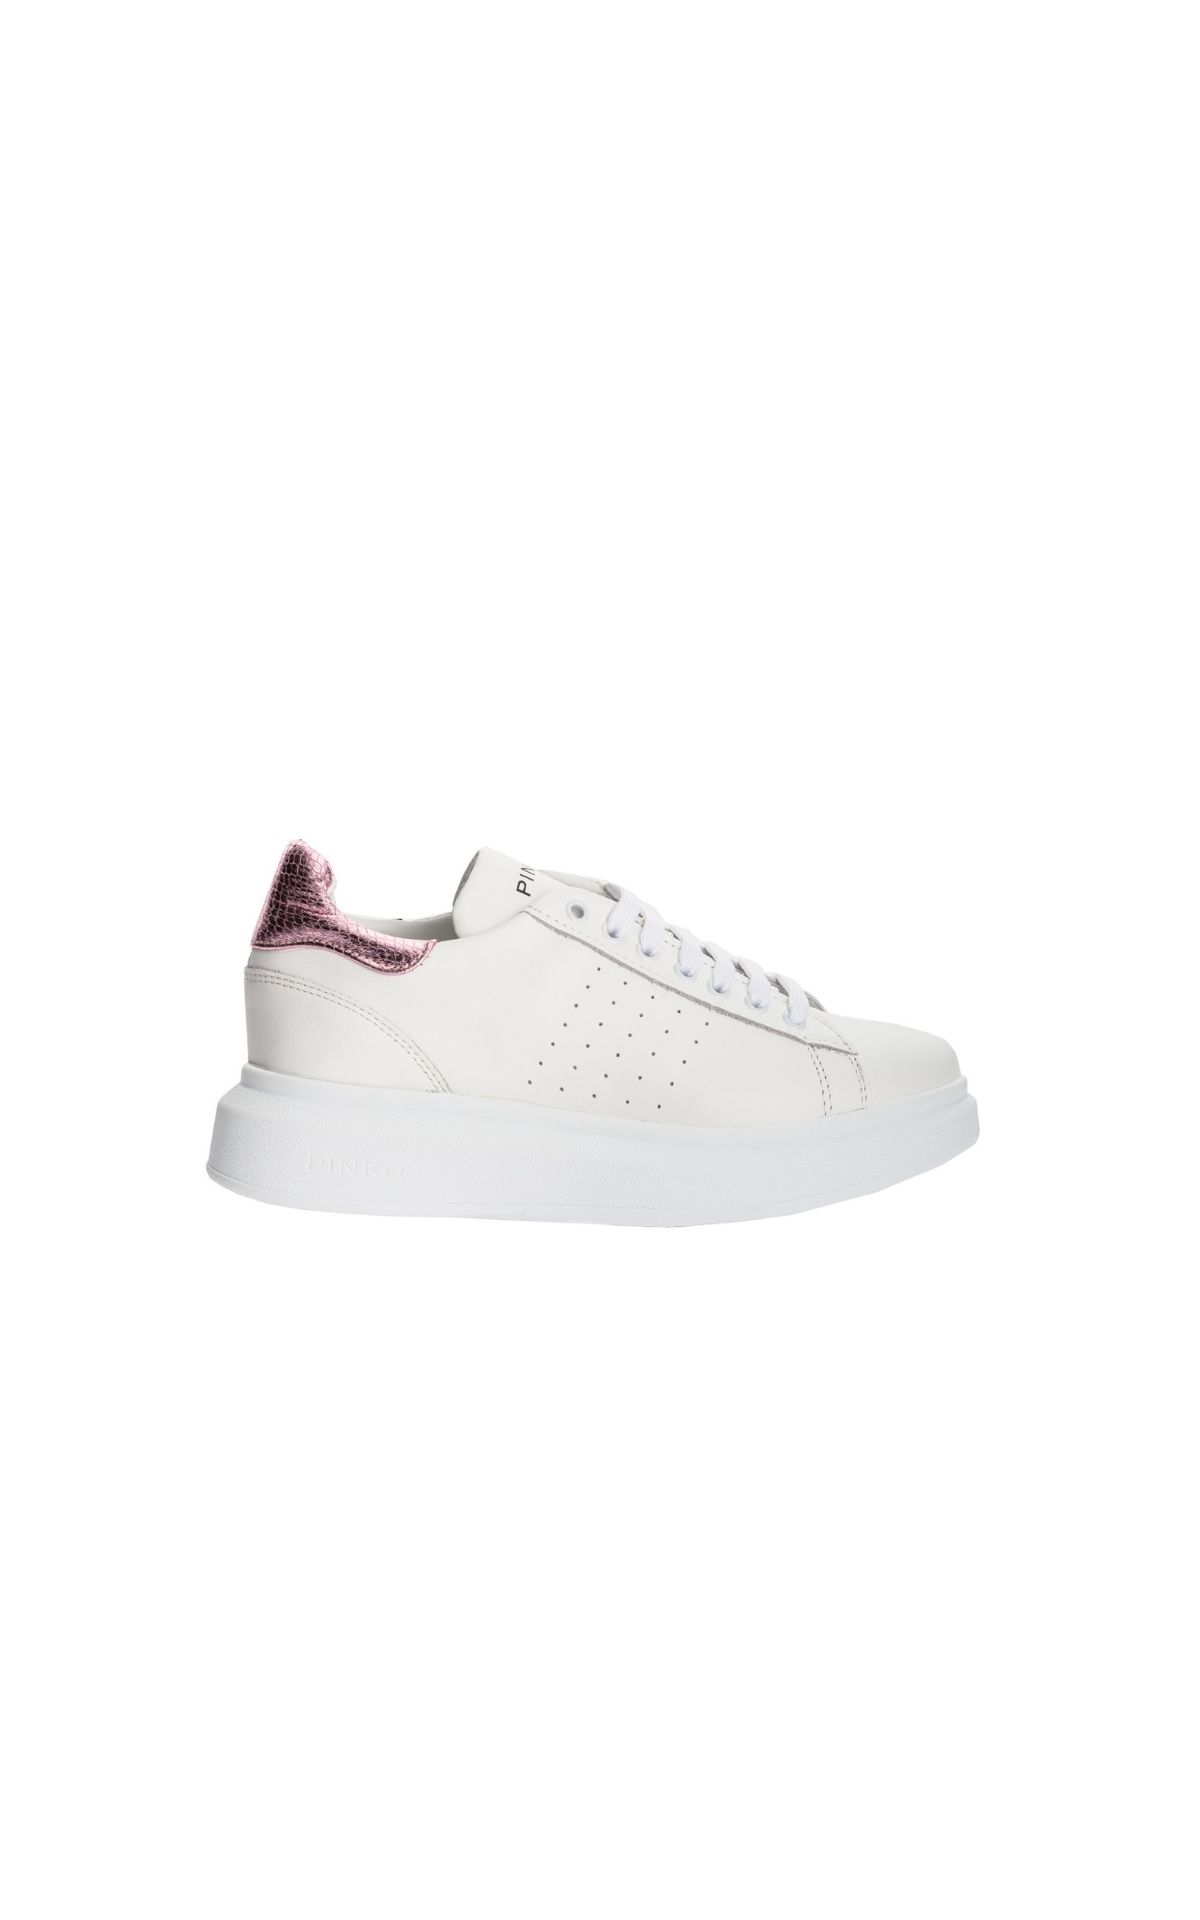 La Vallée Village Pinko Leather sneakers